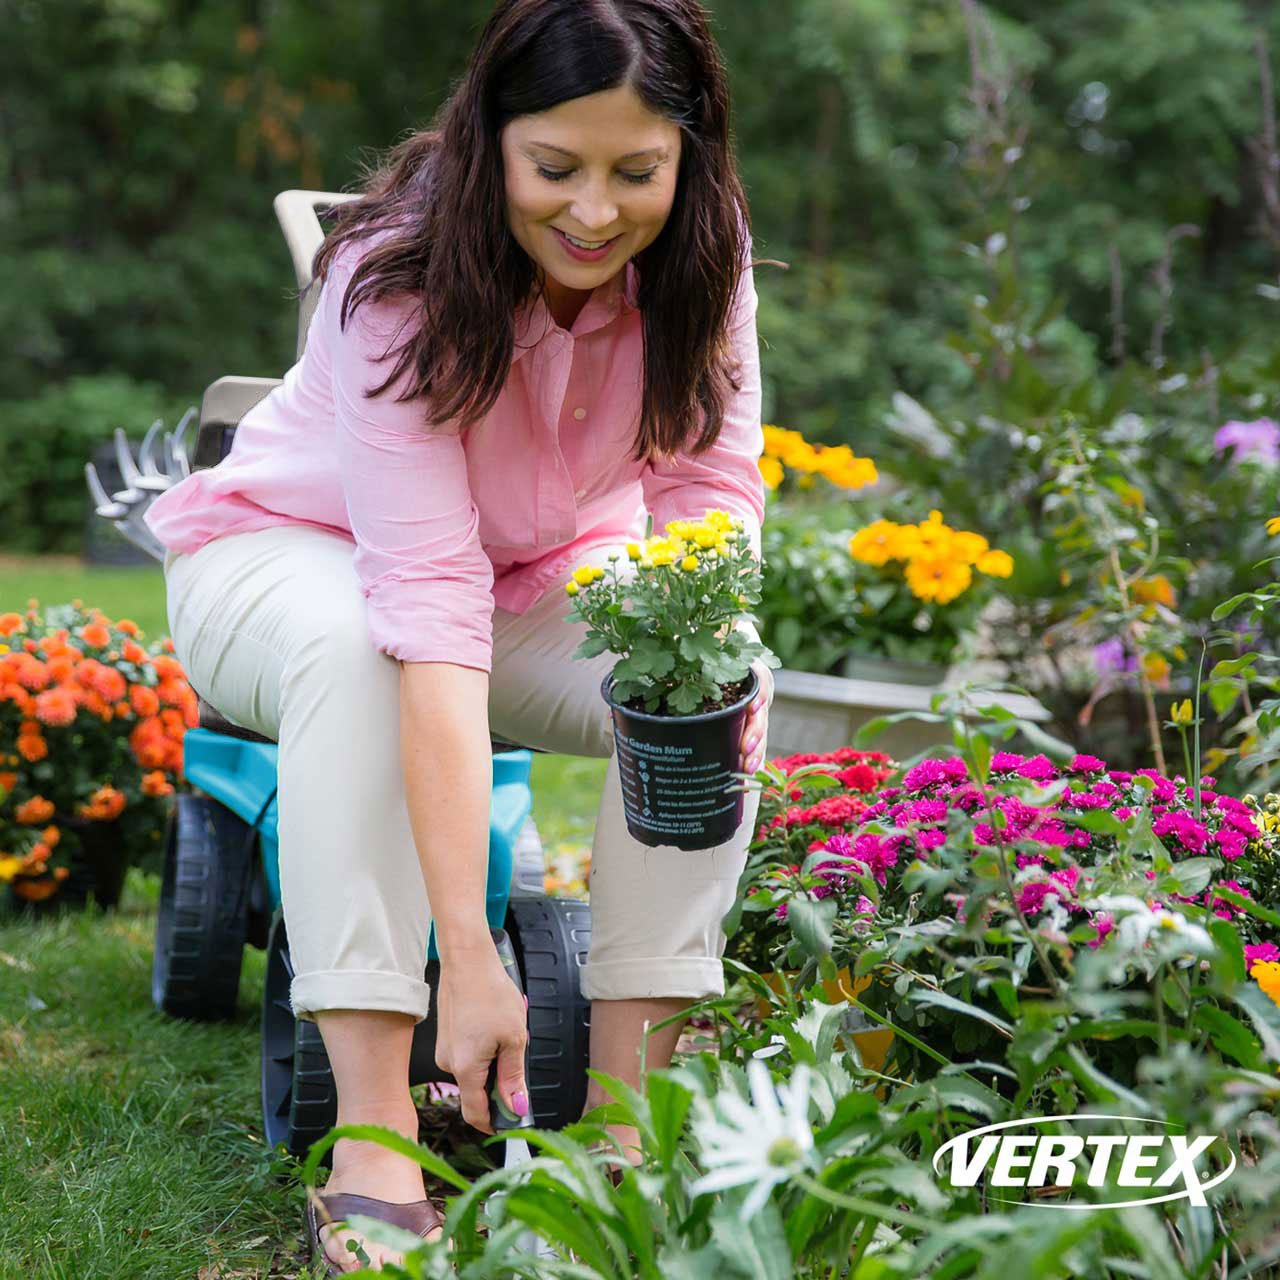 Easy Up Deluxe XTV Rolling Garden Seat and Scoot - Adjustable Swivel Seat, Heavy Duty Wheels, and Ergonomic Design To Assist Standing, Sitting, and Bending Over Made in the USA (Deluxe XTV Teal) by Vertex (Image #2)